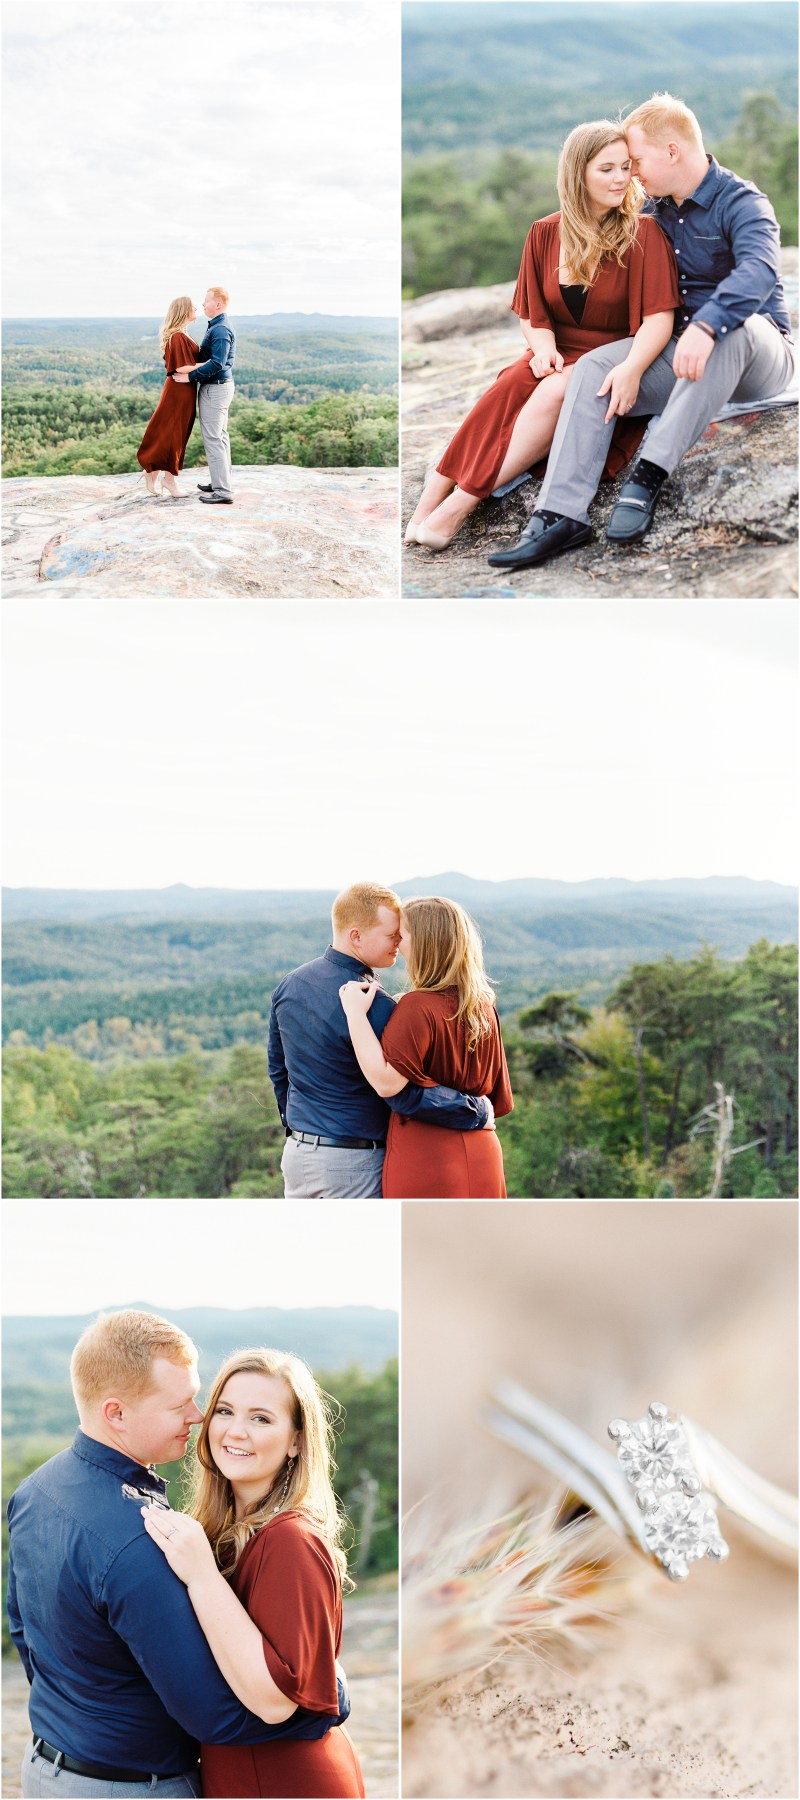 Bald Rock Engagement Session in Cleveland, SC